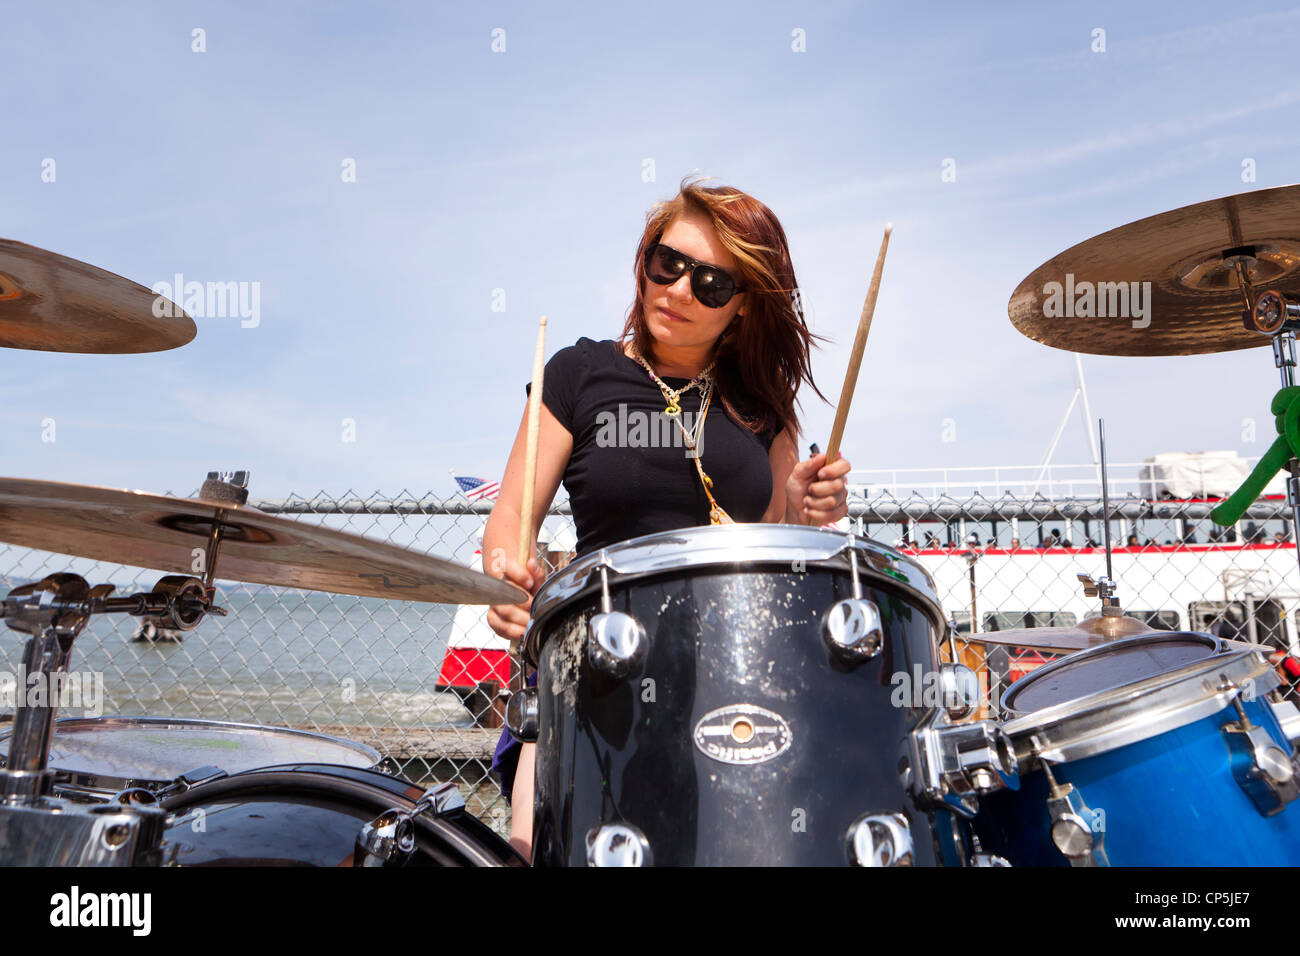 A female drummer outdoors - Stock Image